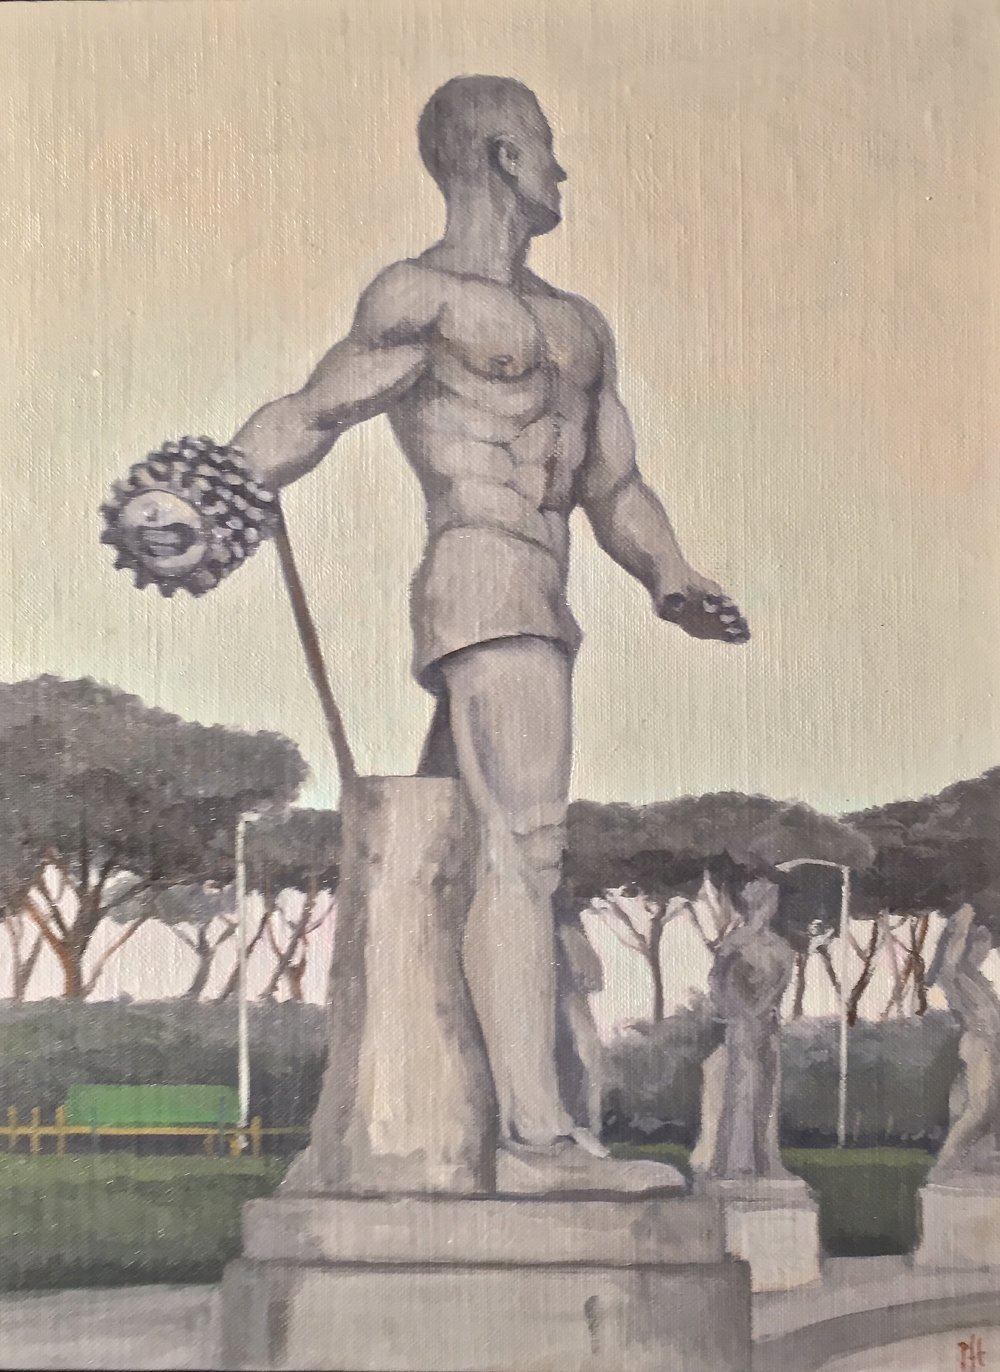 Marble Athlete with Broken Fingers